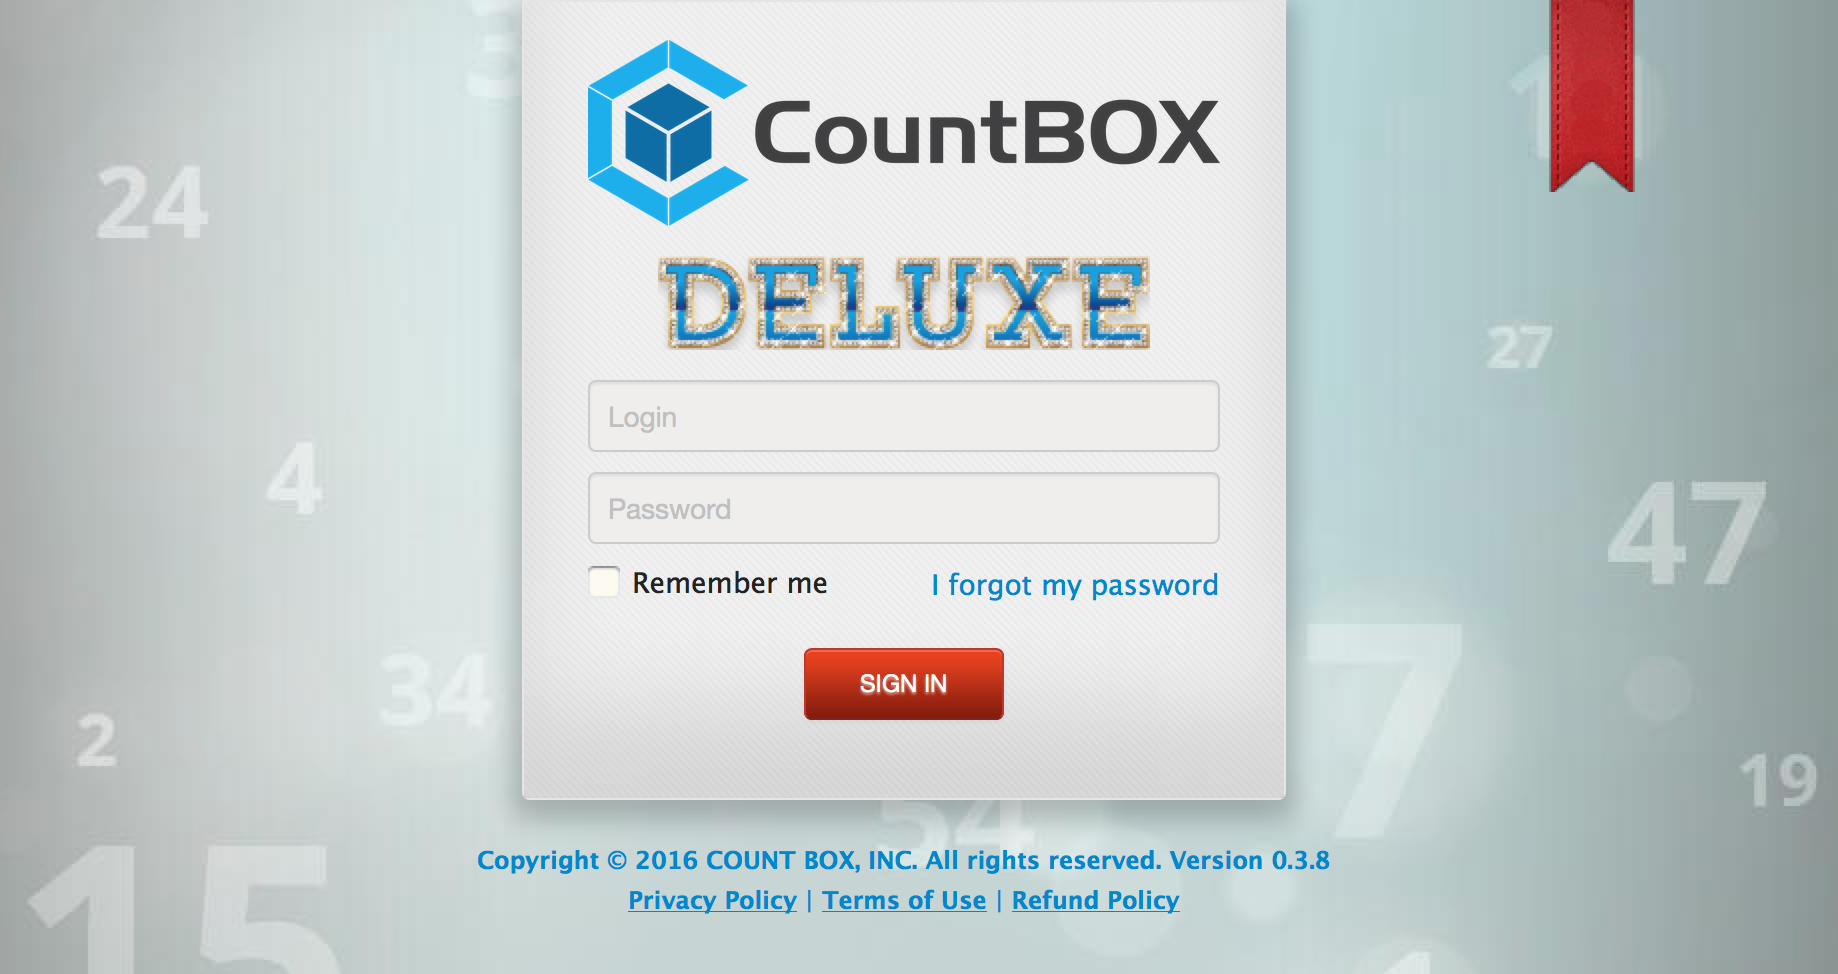 countbox-slide1